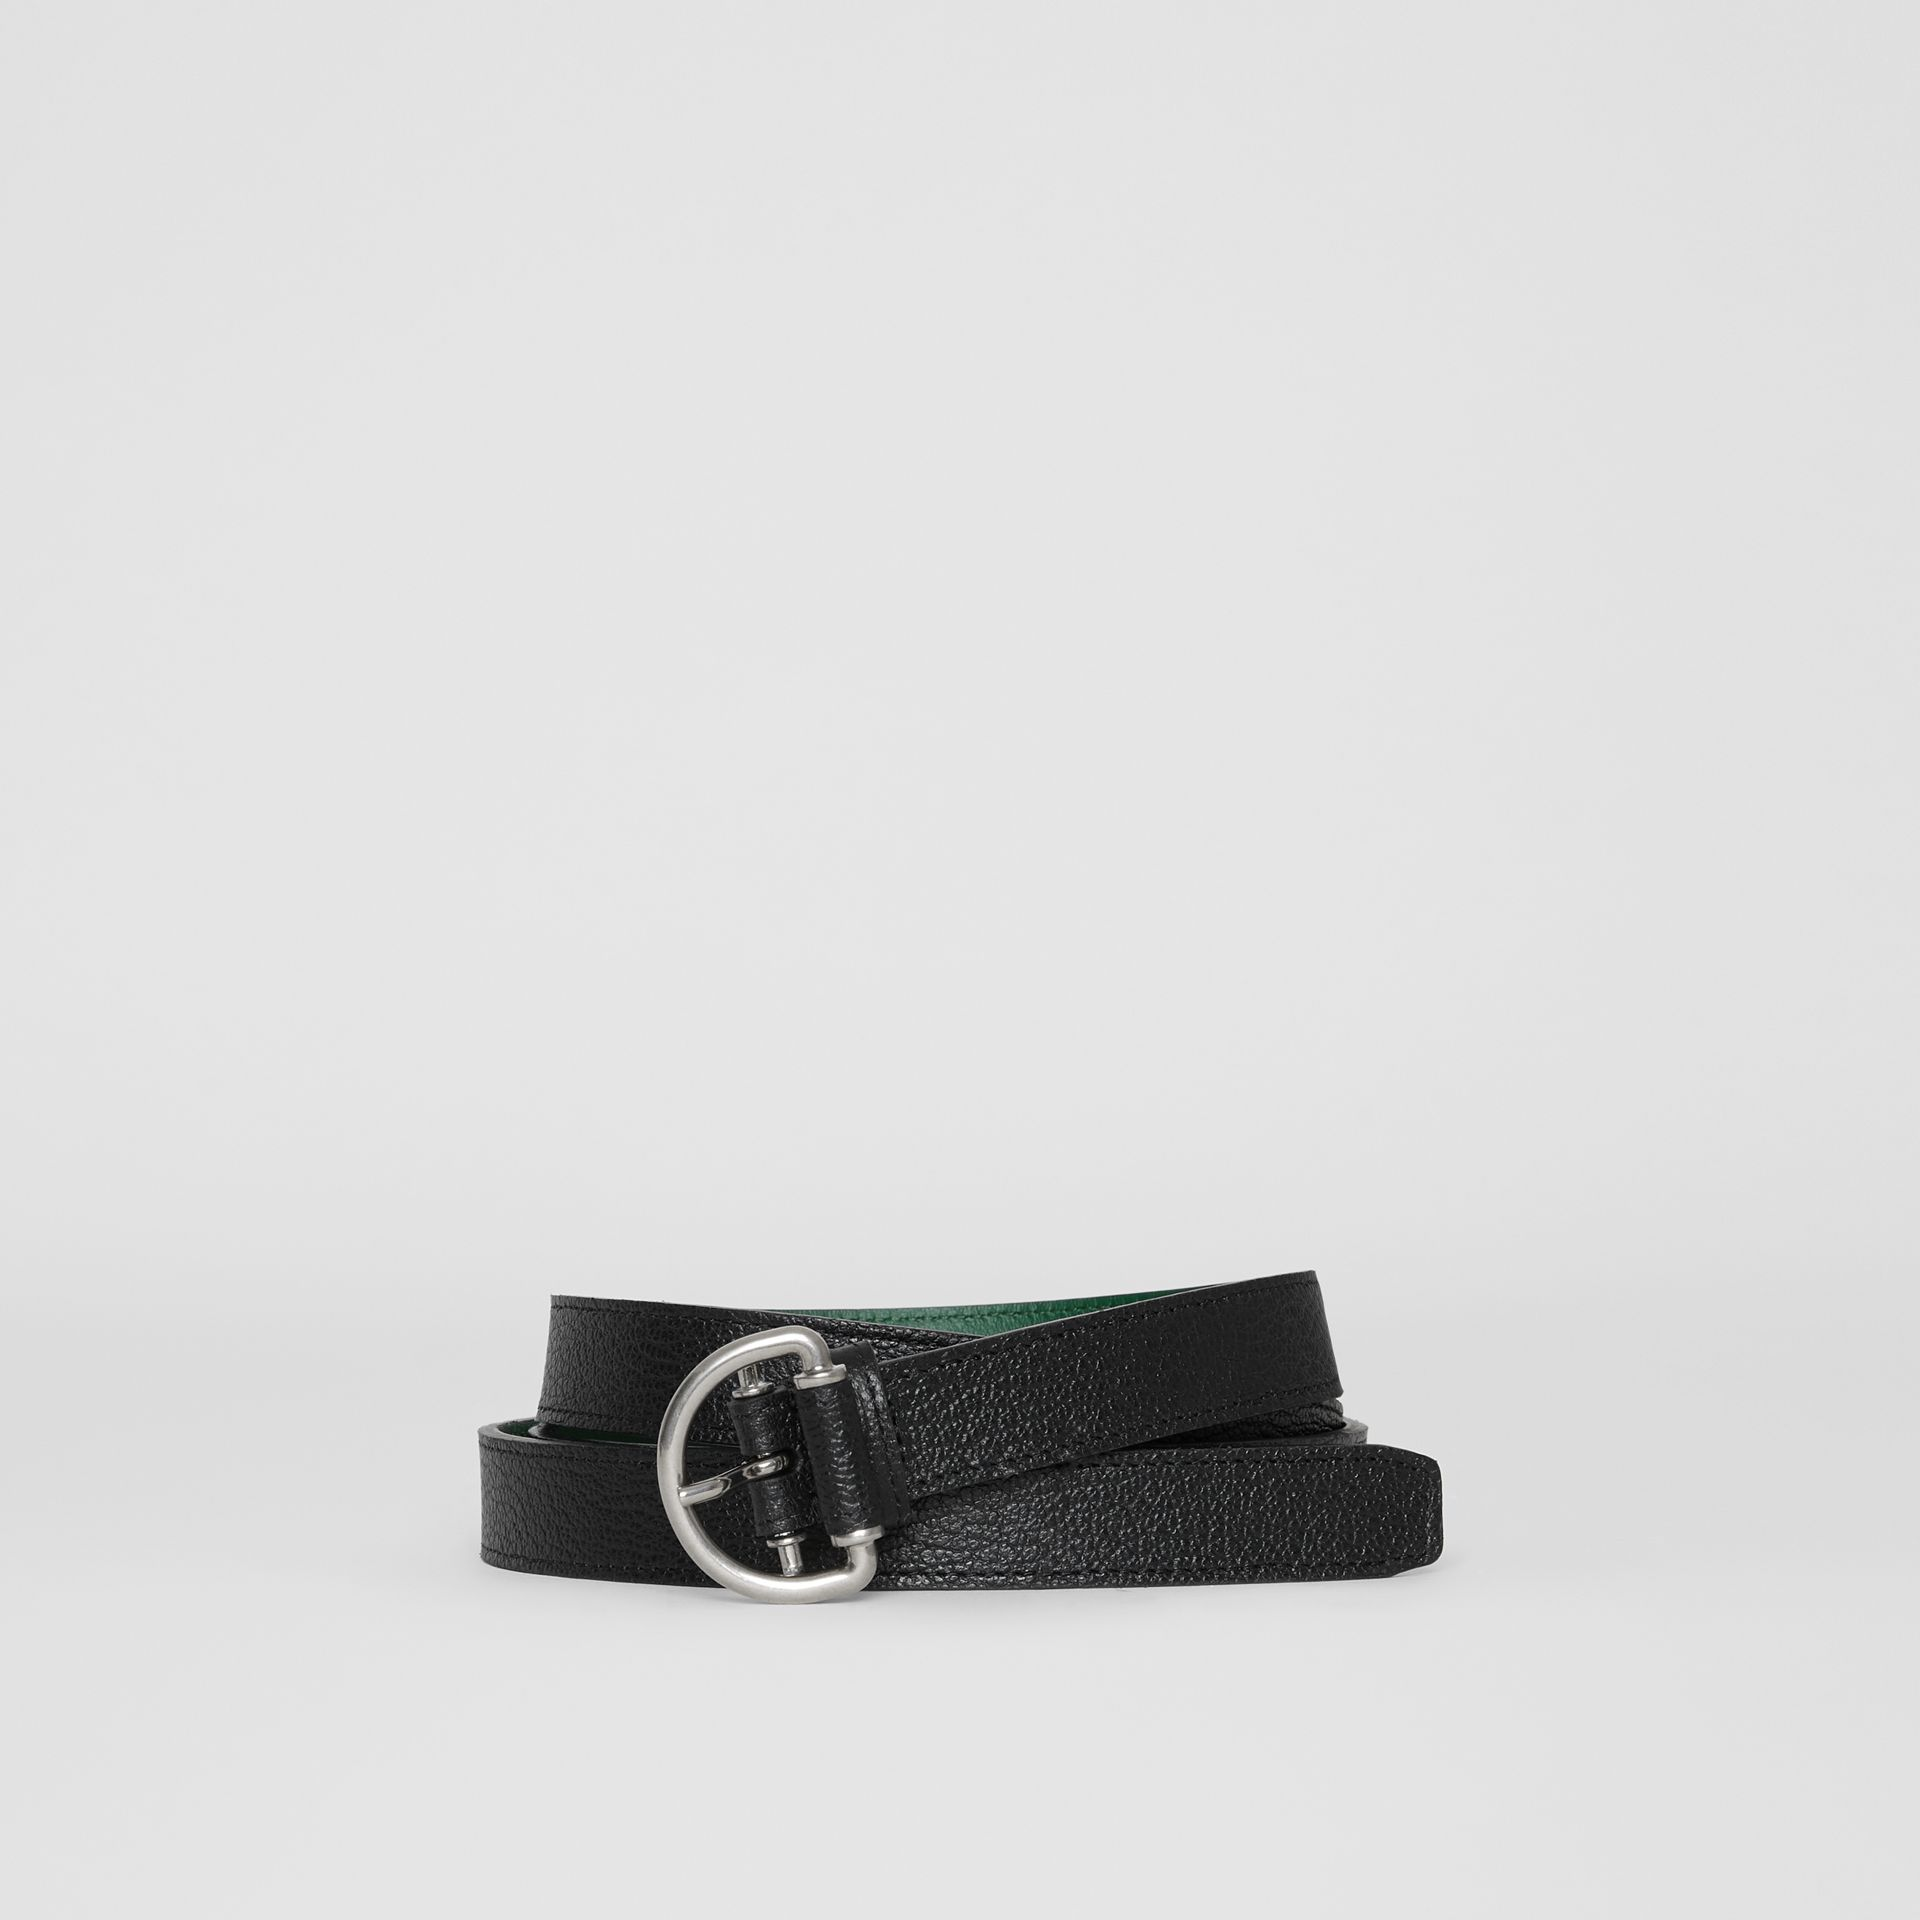 Grainy Leather D-ring Belt in Black/sea Green - Women | Burberry - gallery image 0